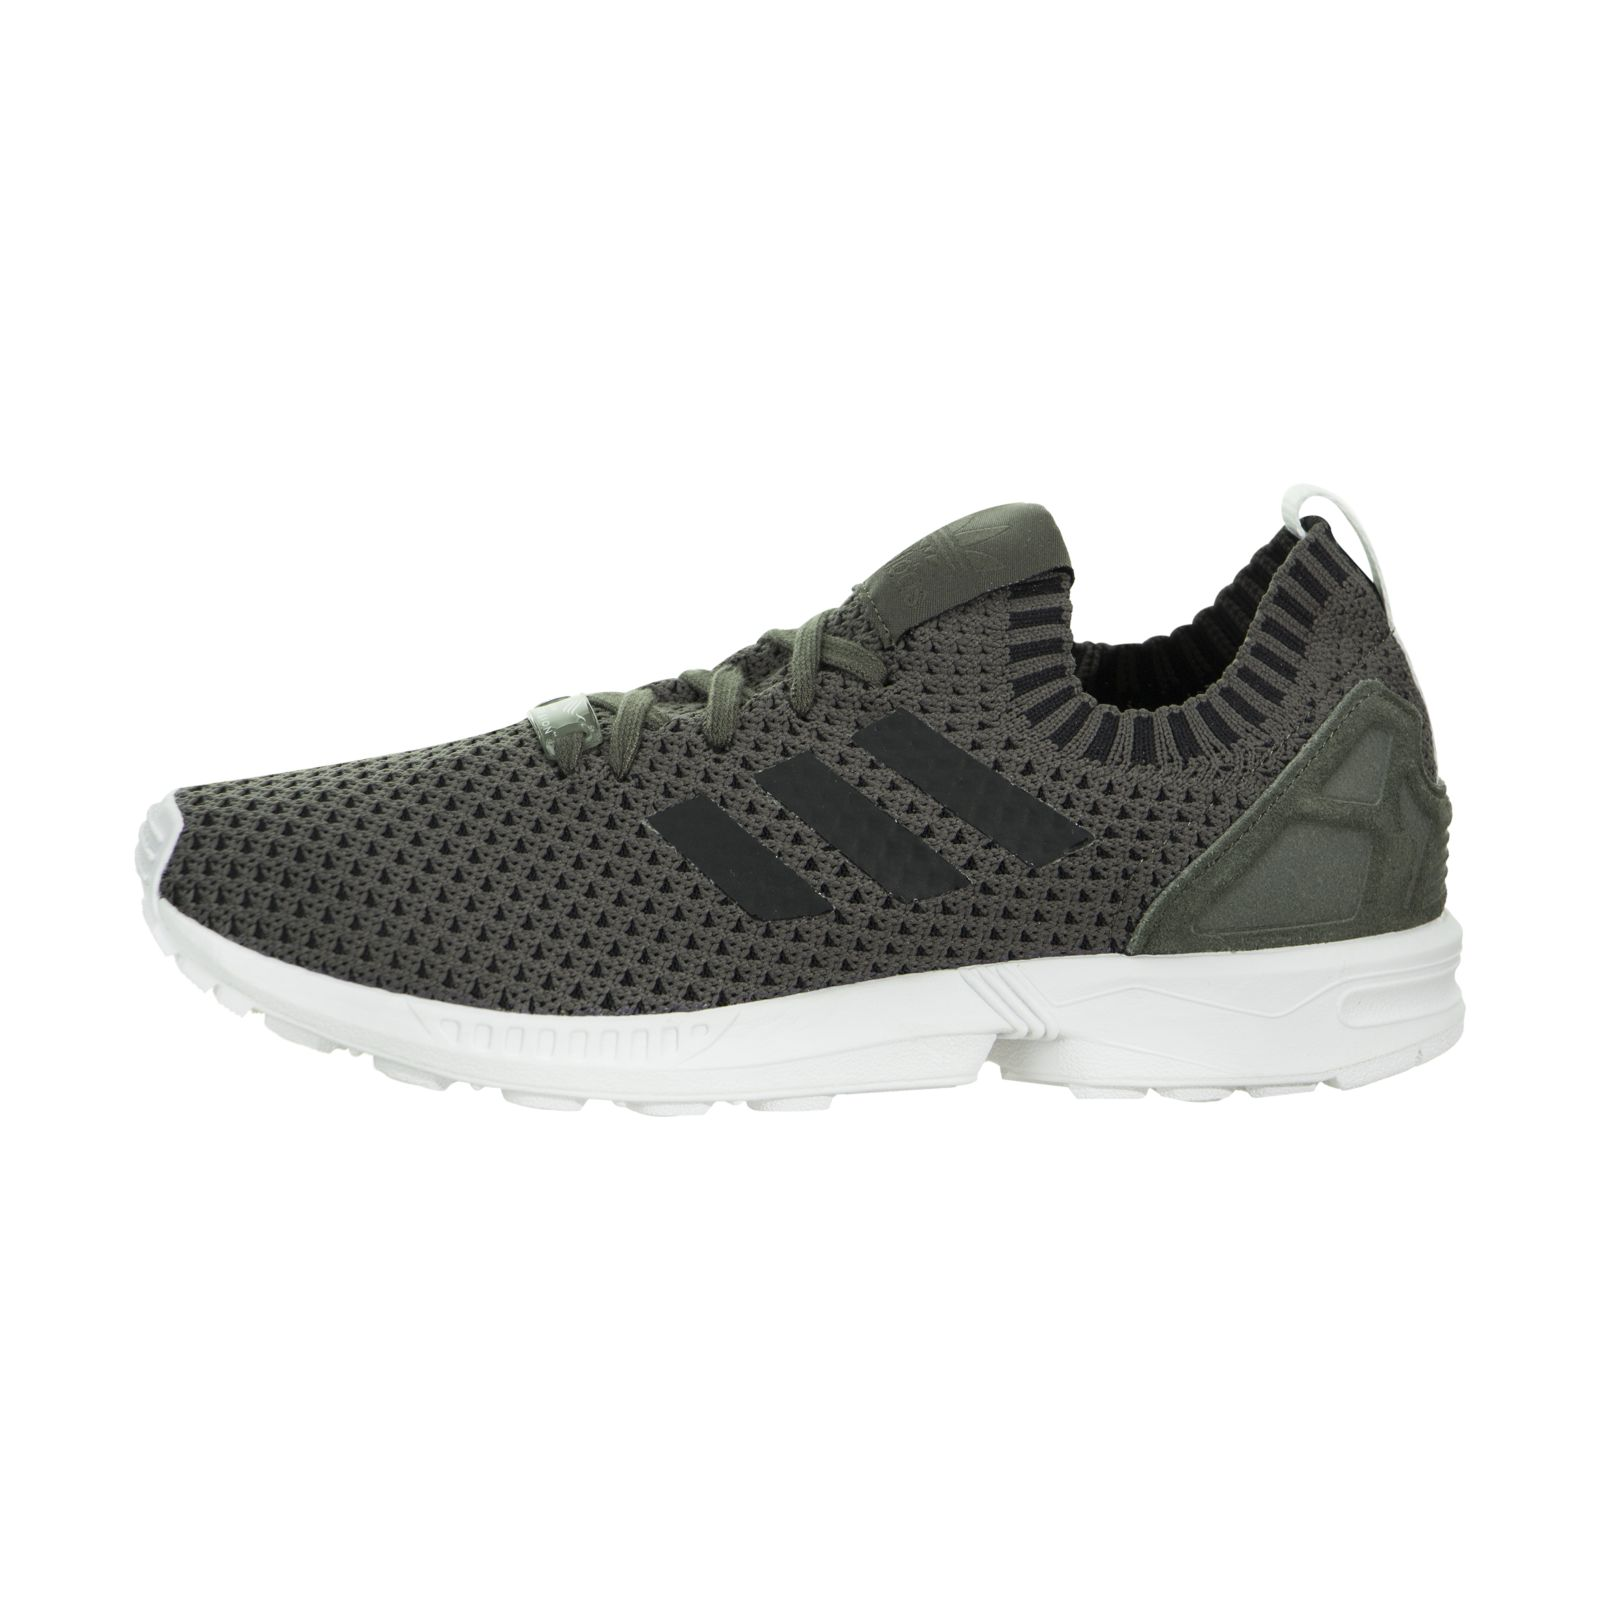 adidas zx flux utlty green